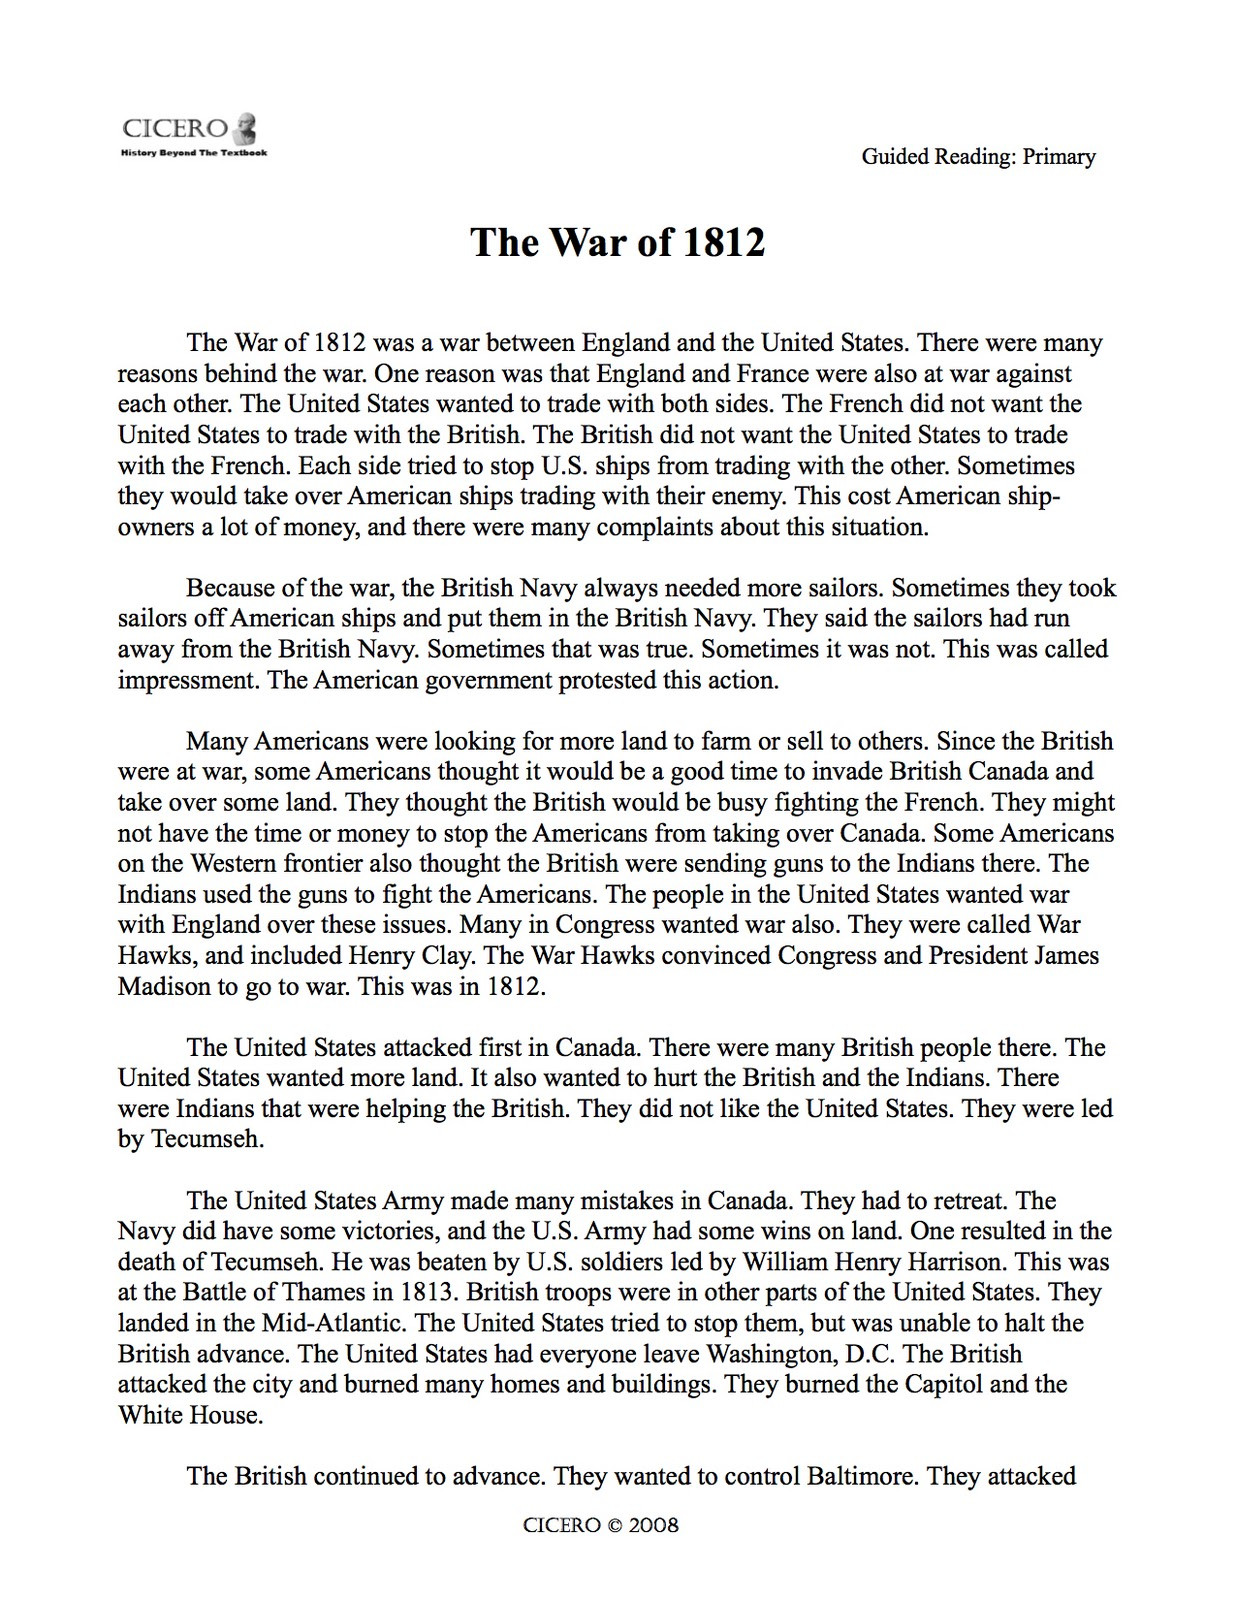 Who won the war of 1812 essay